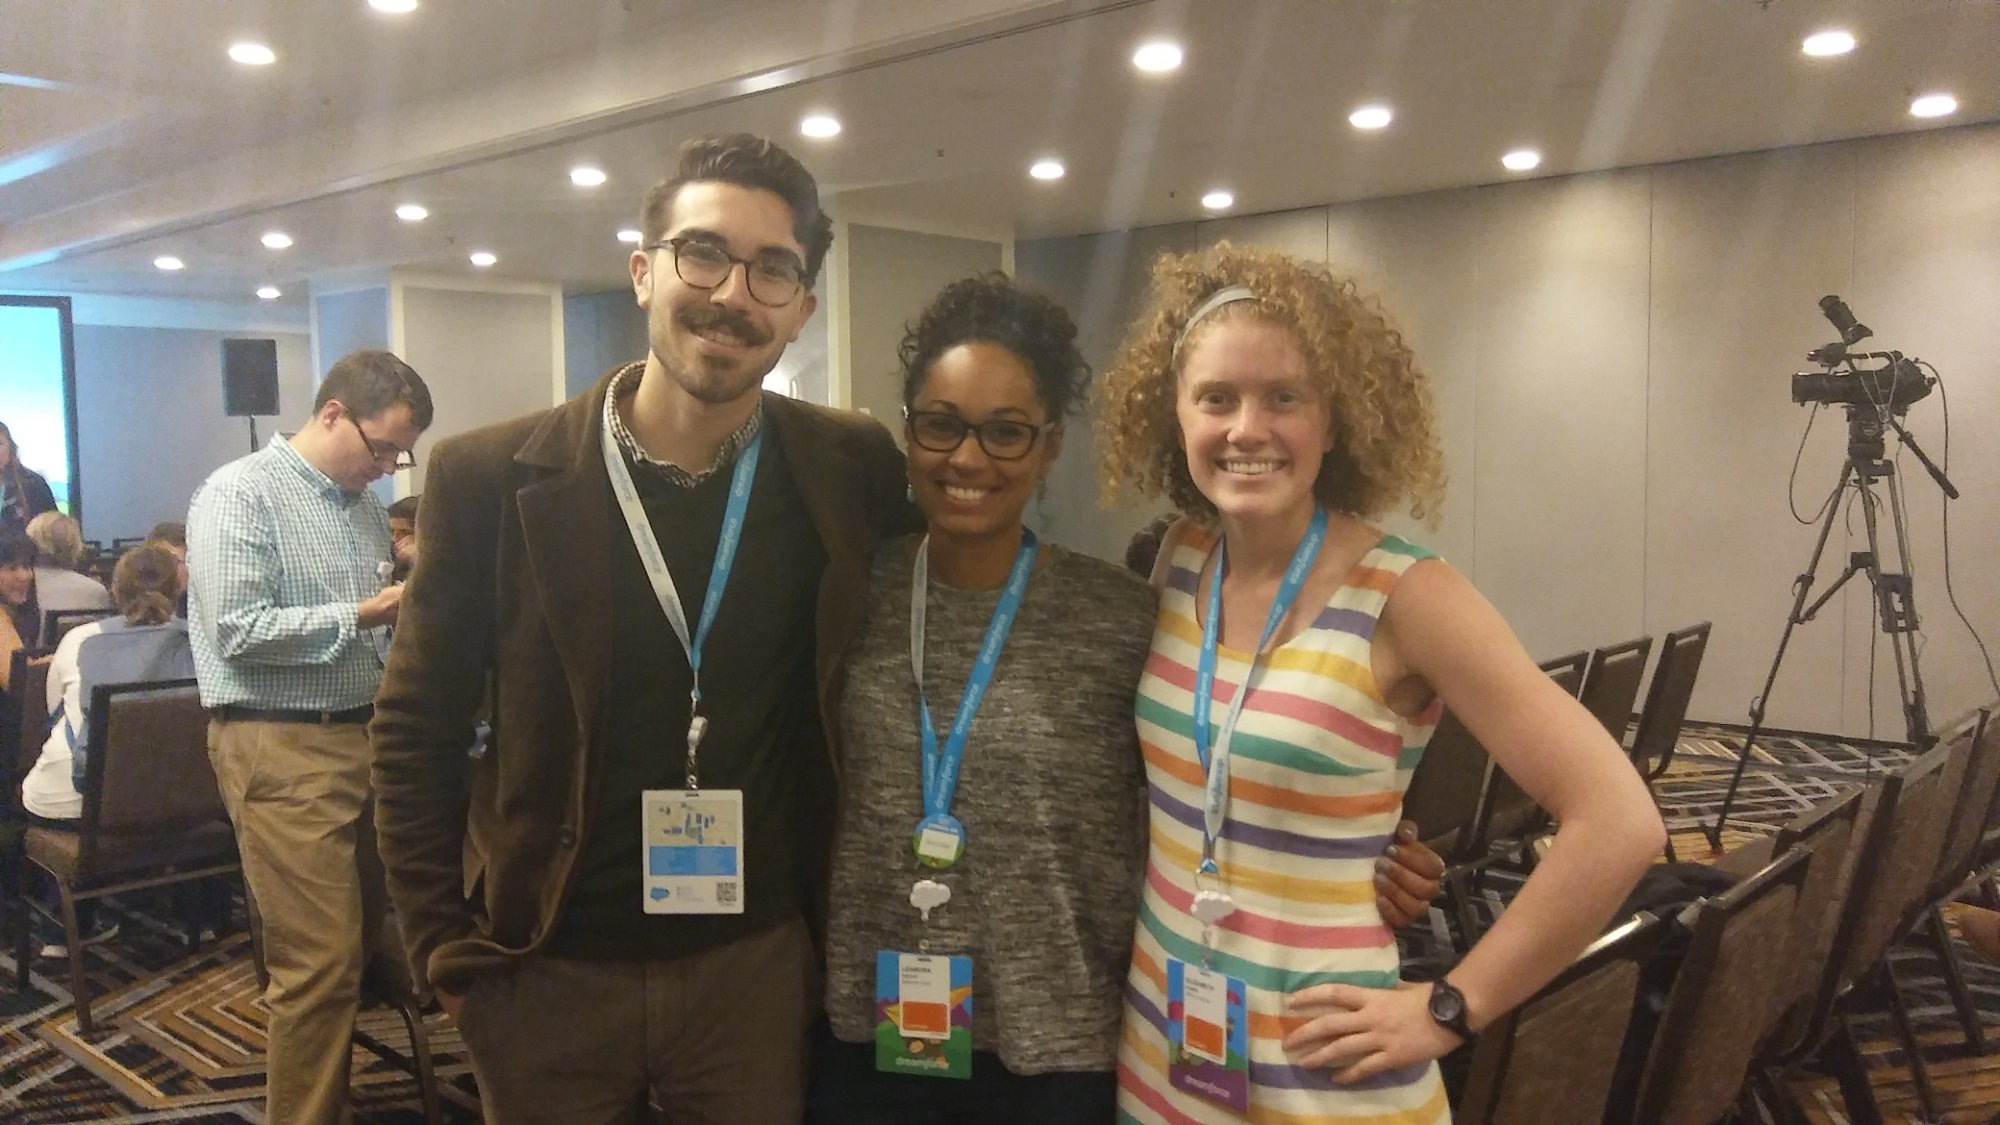 Baltimore Corps staff at Dreamforce Conference in San Francisco